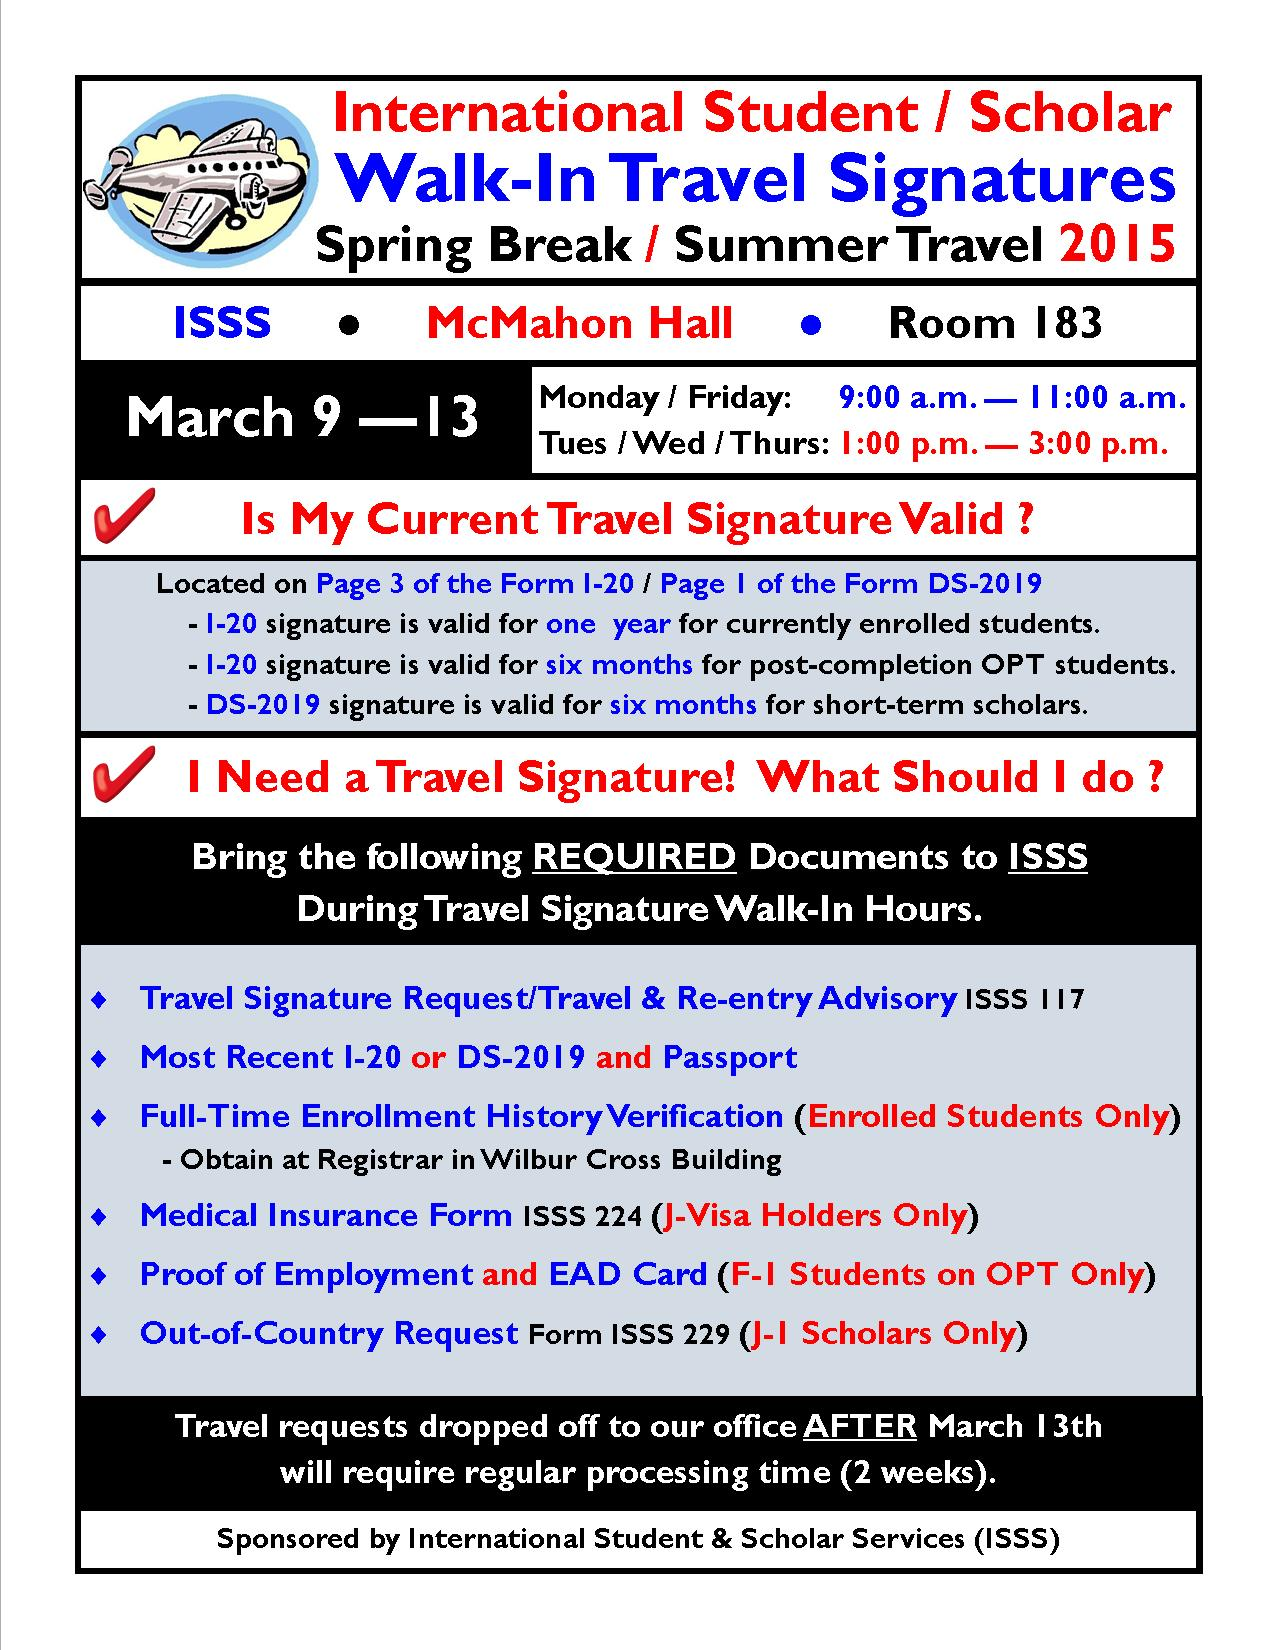 Traveling over spring break? Don't leave without a travel